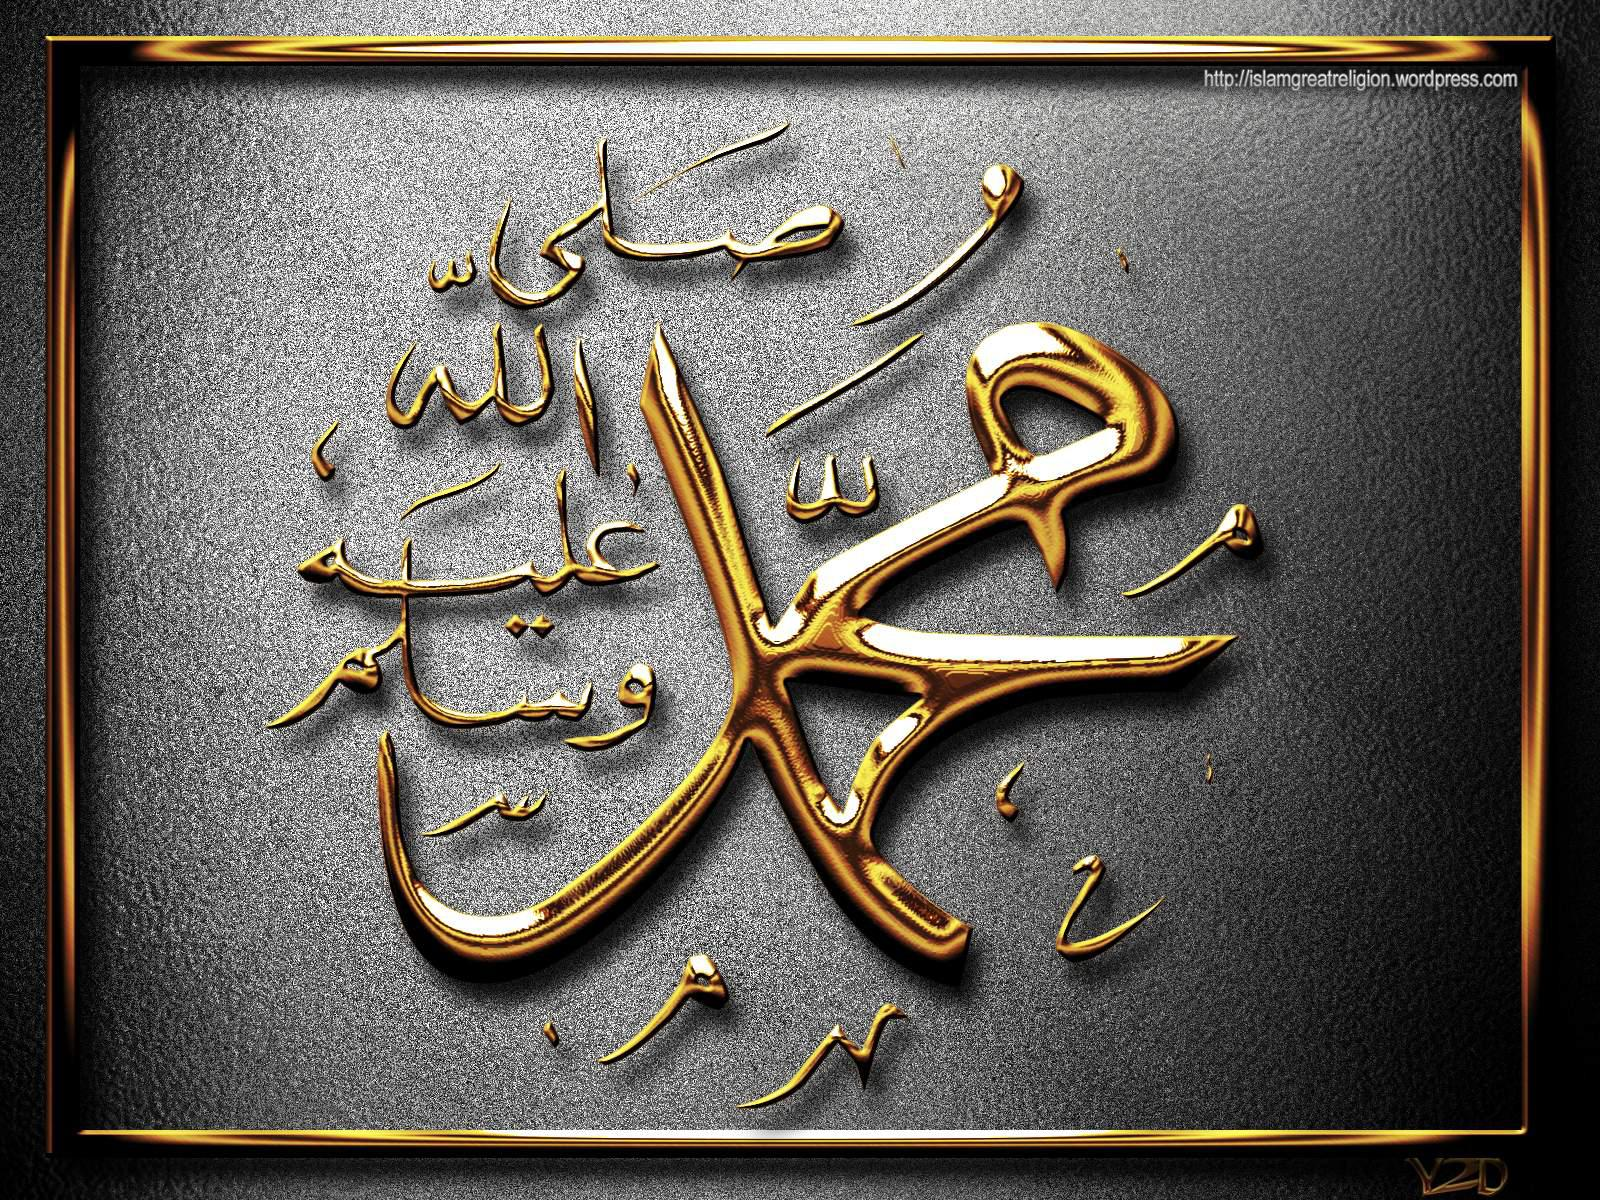 COOL IMAGES Muhammad pbuh wallpapers 1600x1200